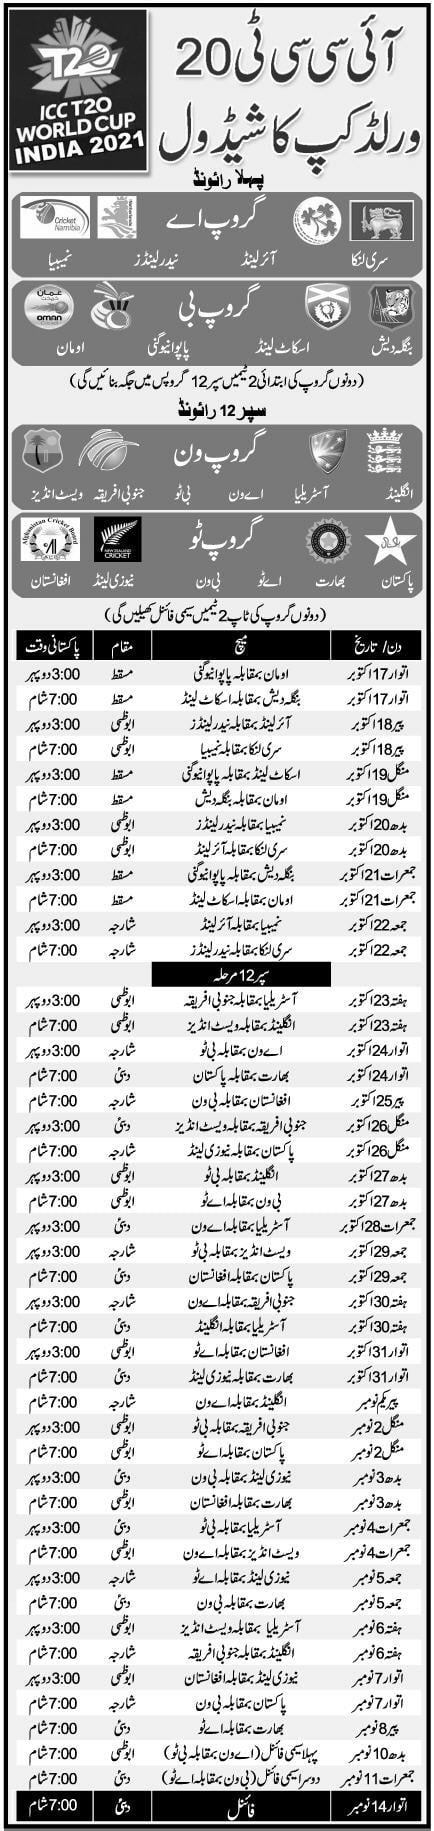 T 20 World Cup Cricket 2021 Schedule As Per Pakistan Time